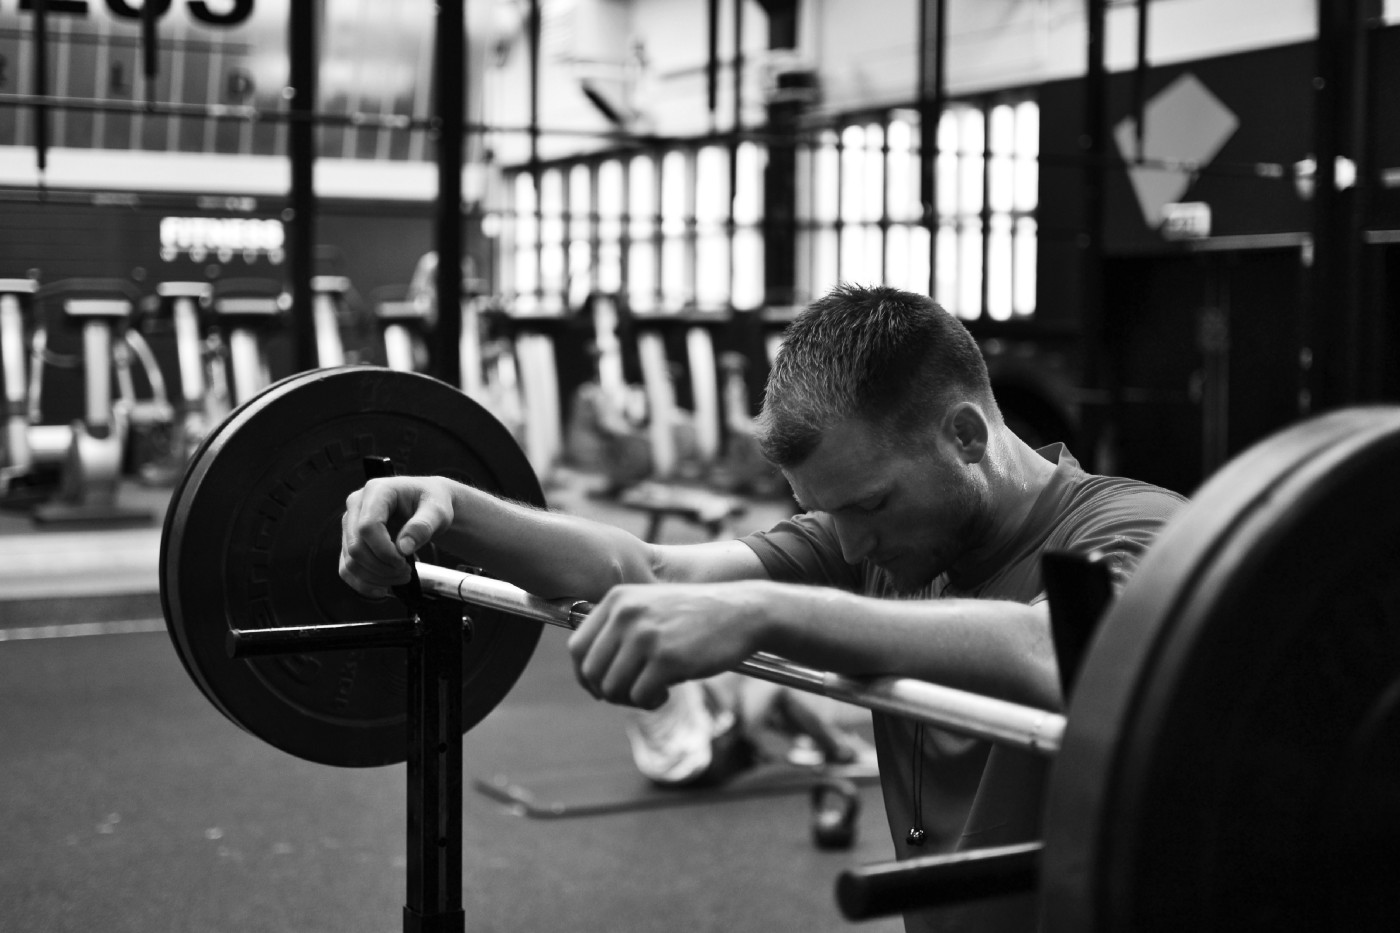 Man stands tired at a barbell